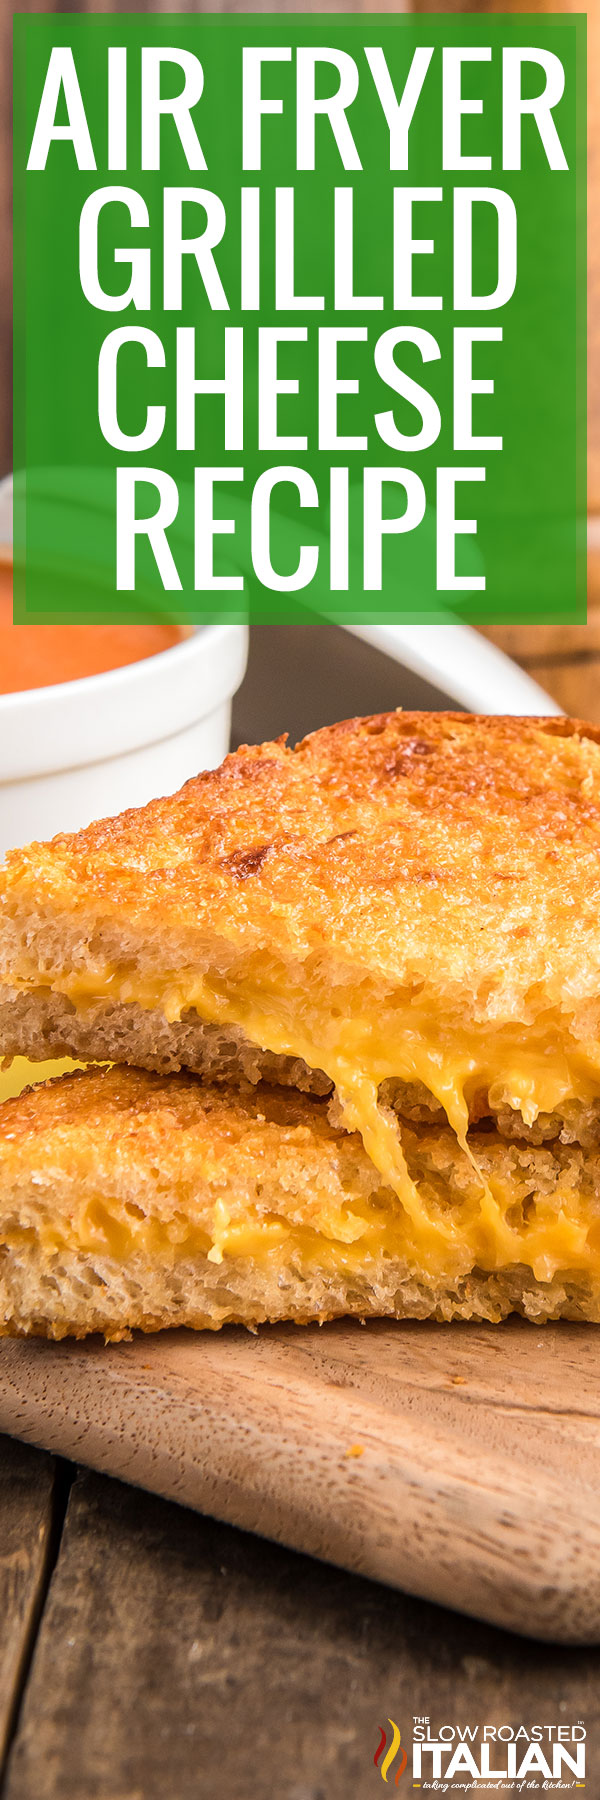 air fryer grilled cheese closeup